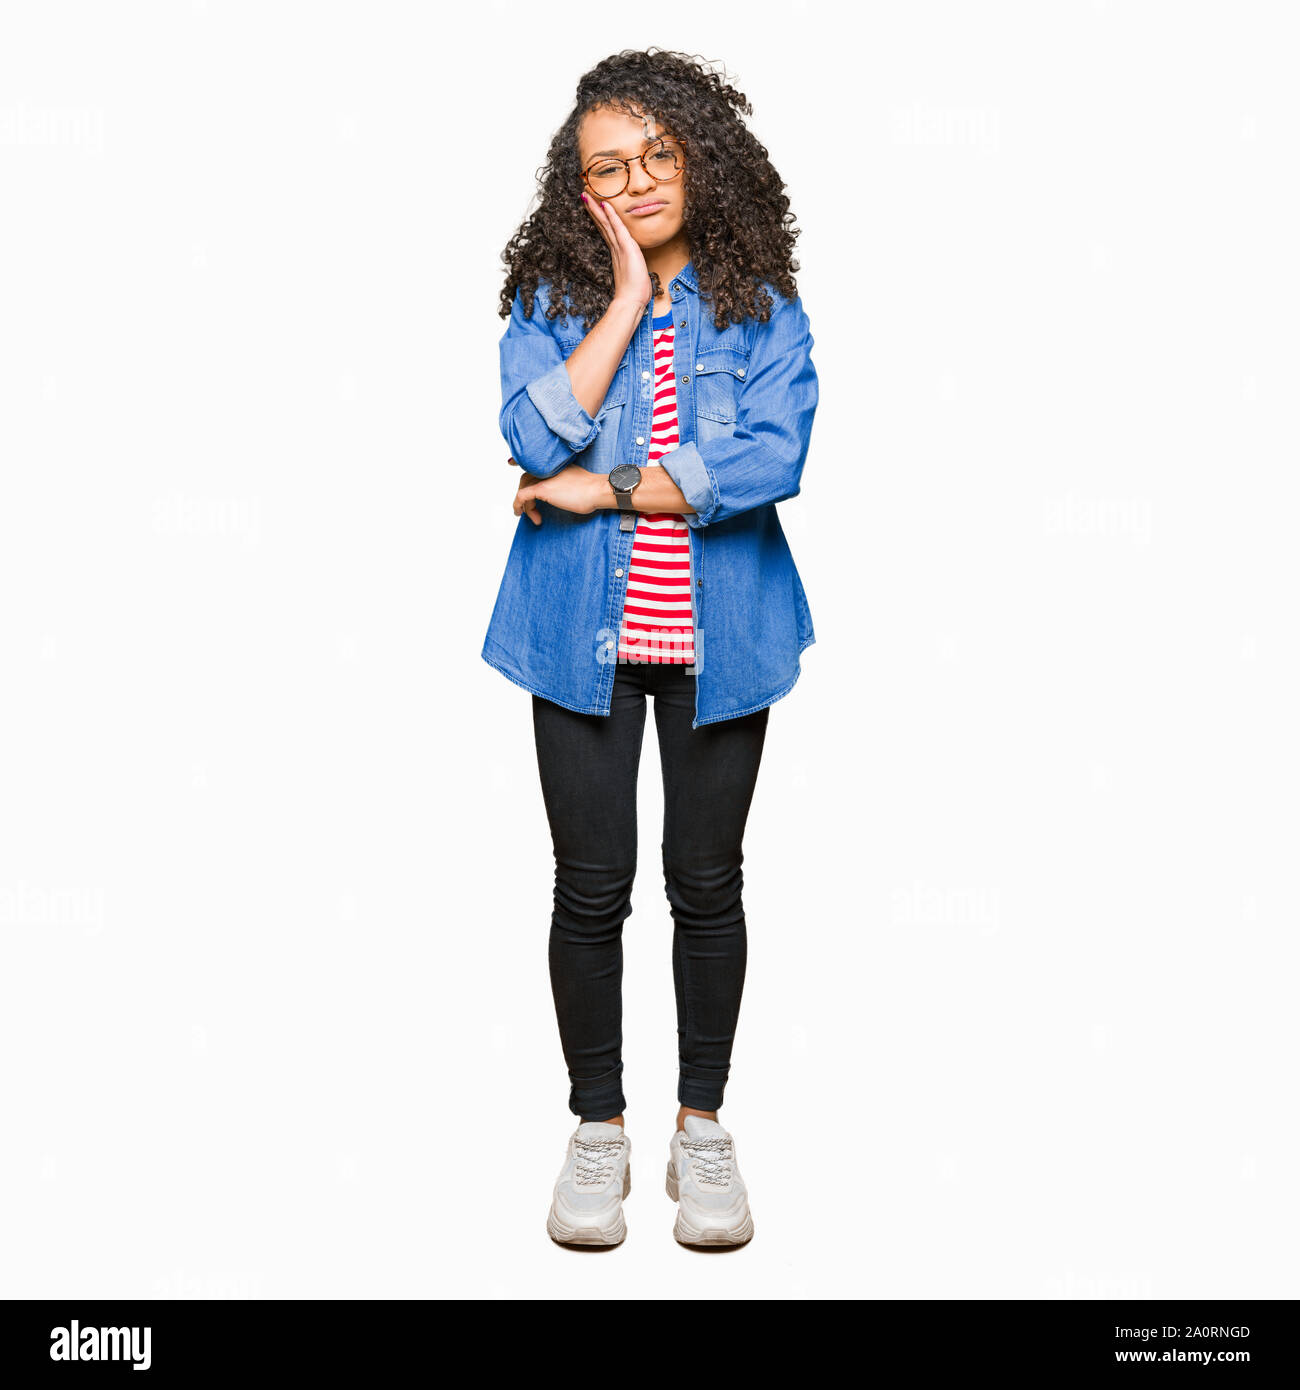 Young beautiful woman with curly hair wearing glasses thinking looking tired and bored with depression problems with crossed arms. Stock Photo